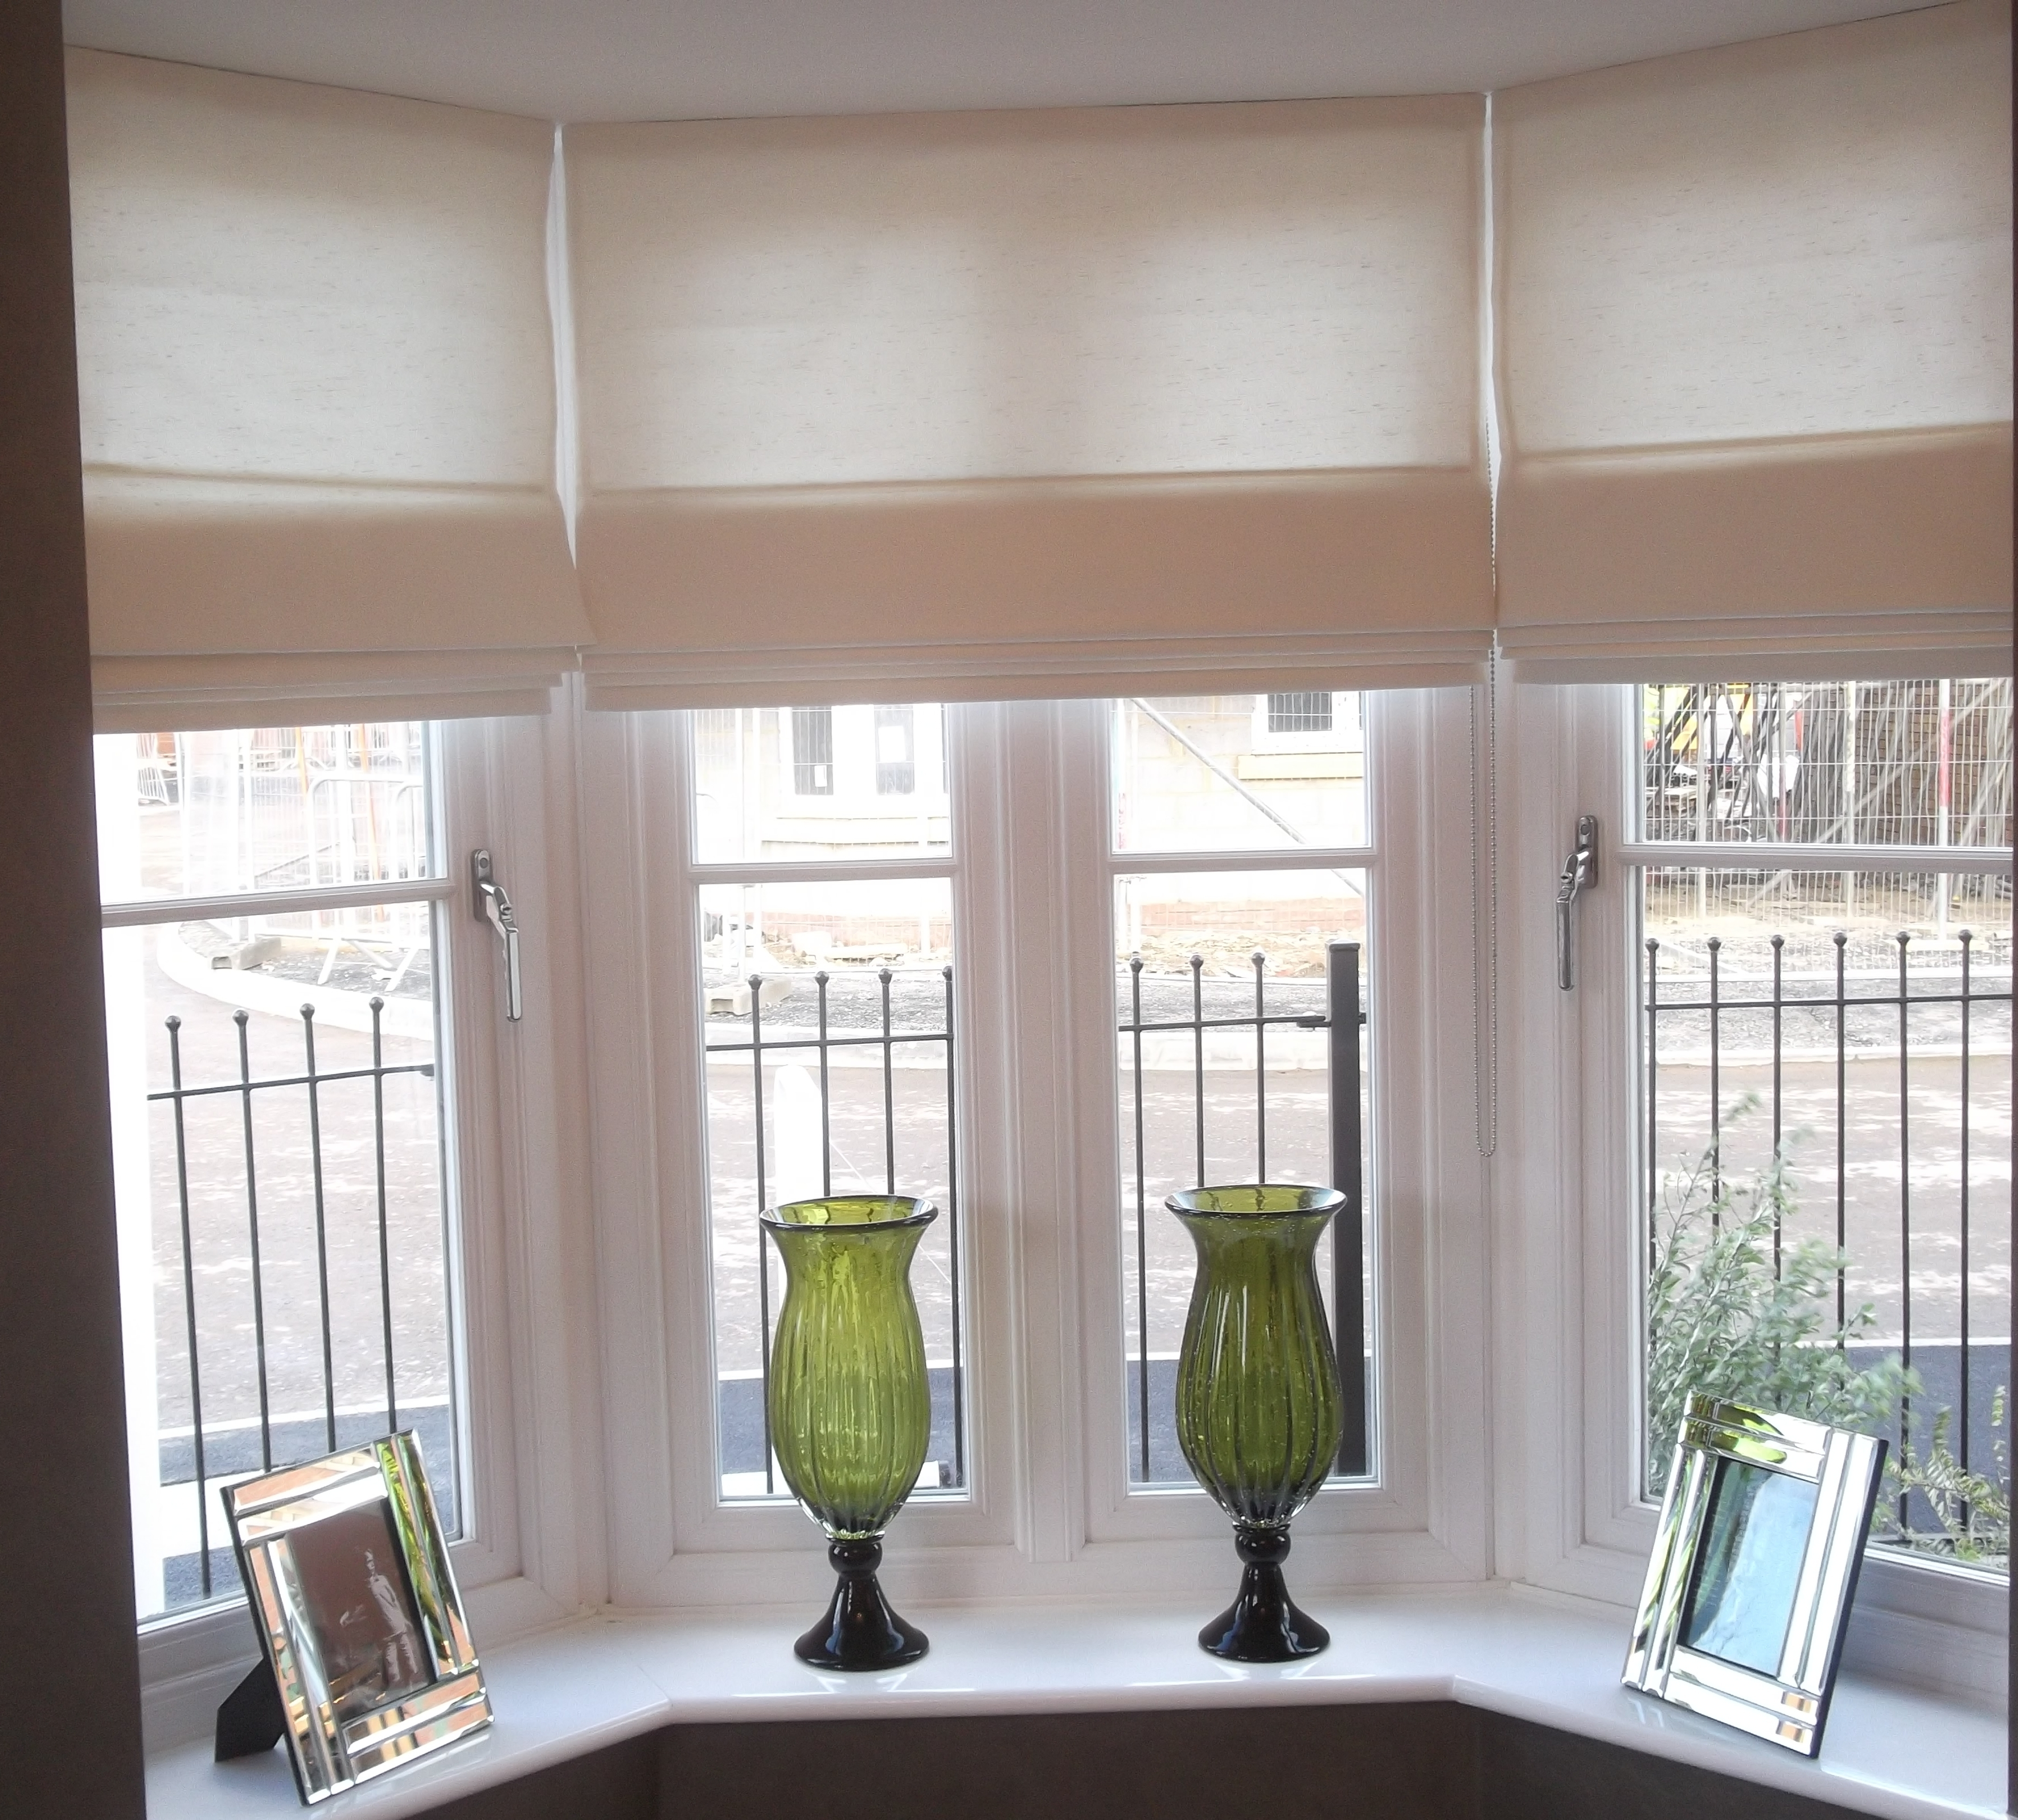 Dressing A Square Bay Window Is Quite A Challenge But When Regarding Roman Blinds On Bay Windows (View 2 of 15)